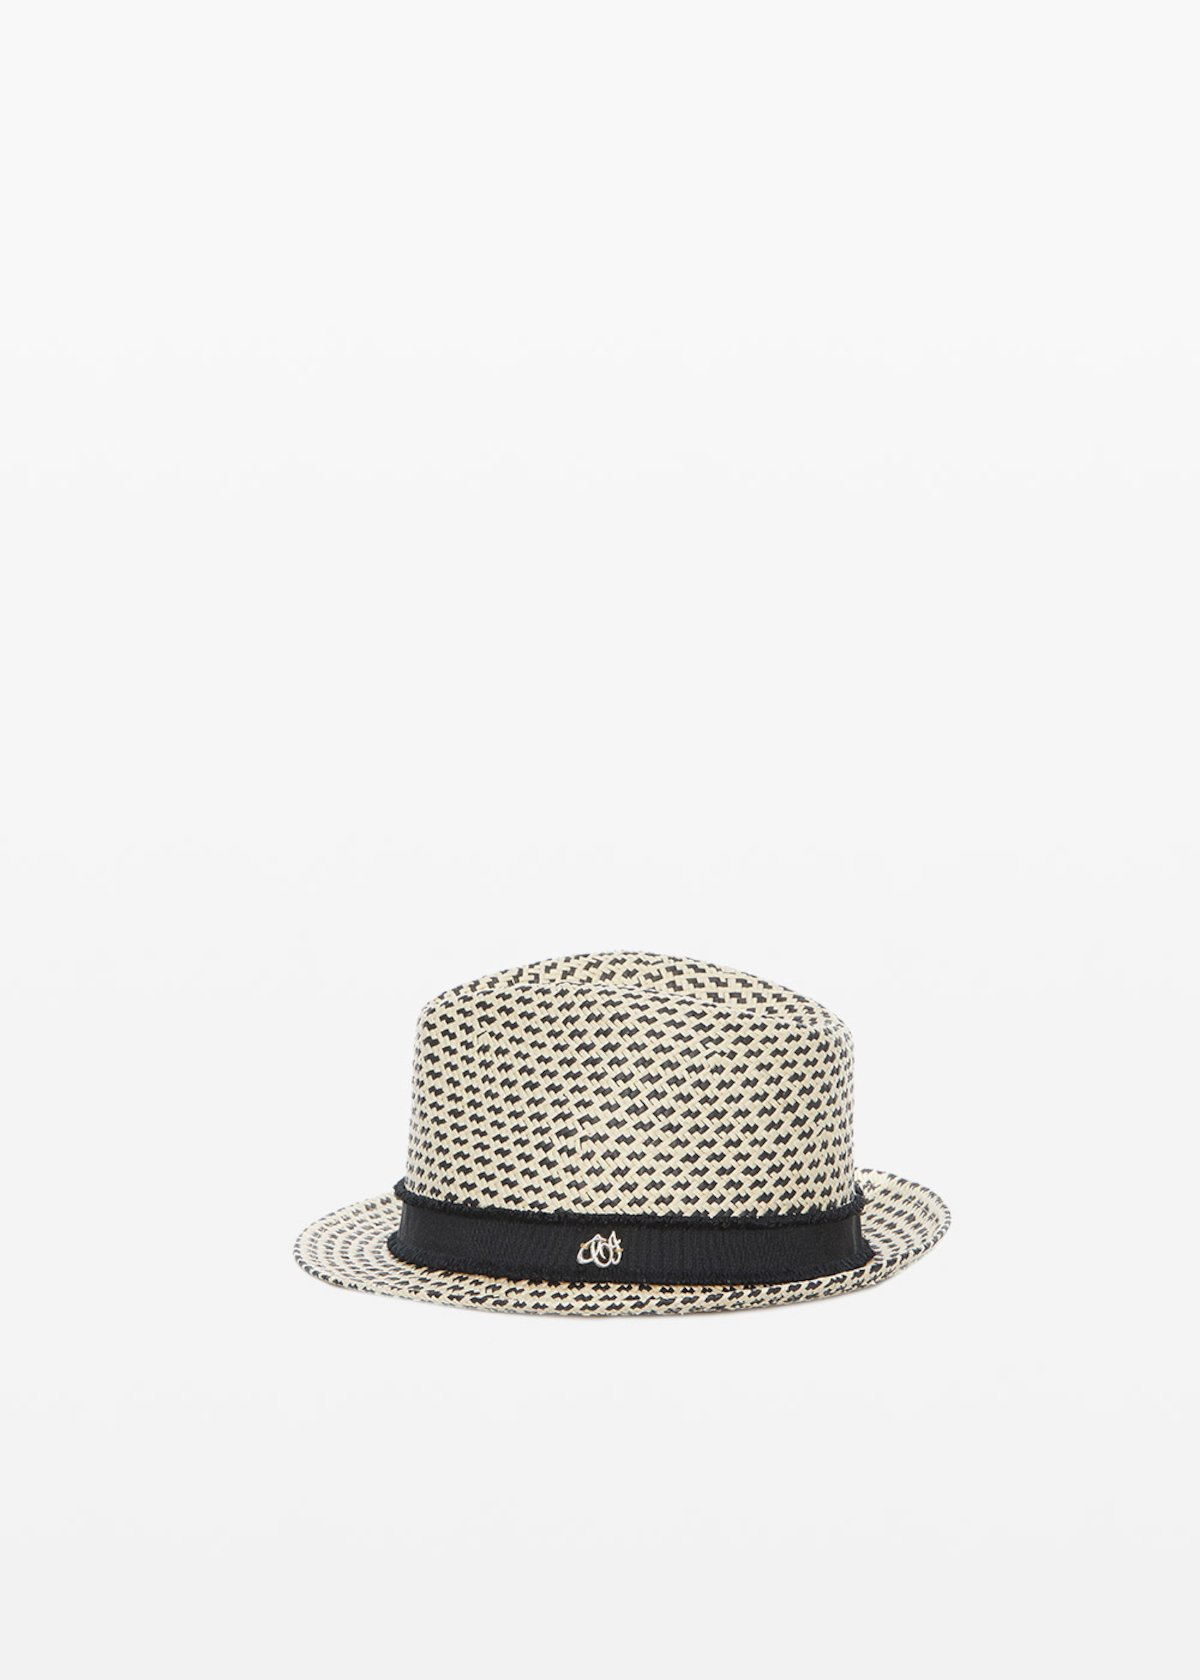 Charly straw hat with grosgrain detail - Beige / Black Fantasia - Woman - Category image